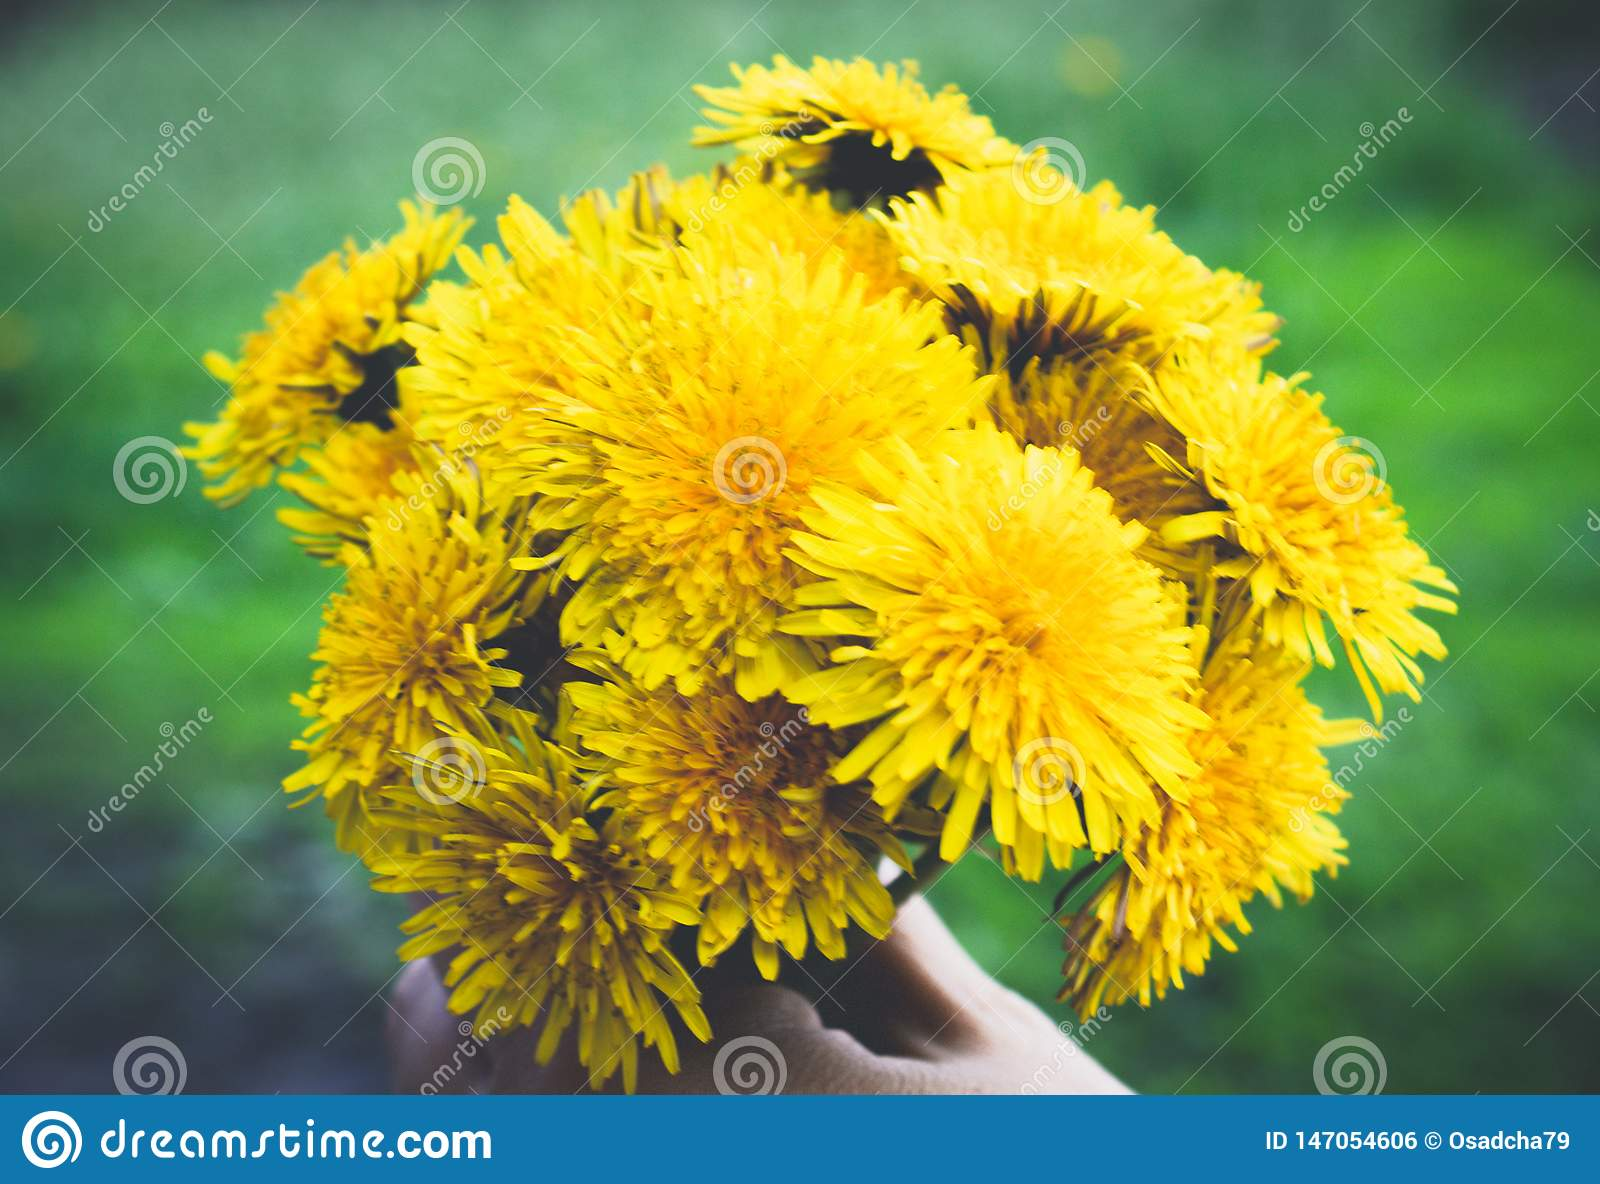 Female hand holding a small bouquet of yellow dandelion bouquet flowers. Close-up